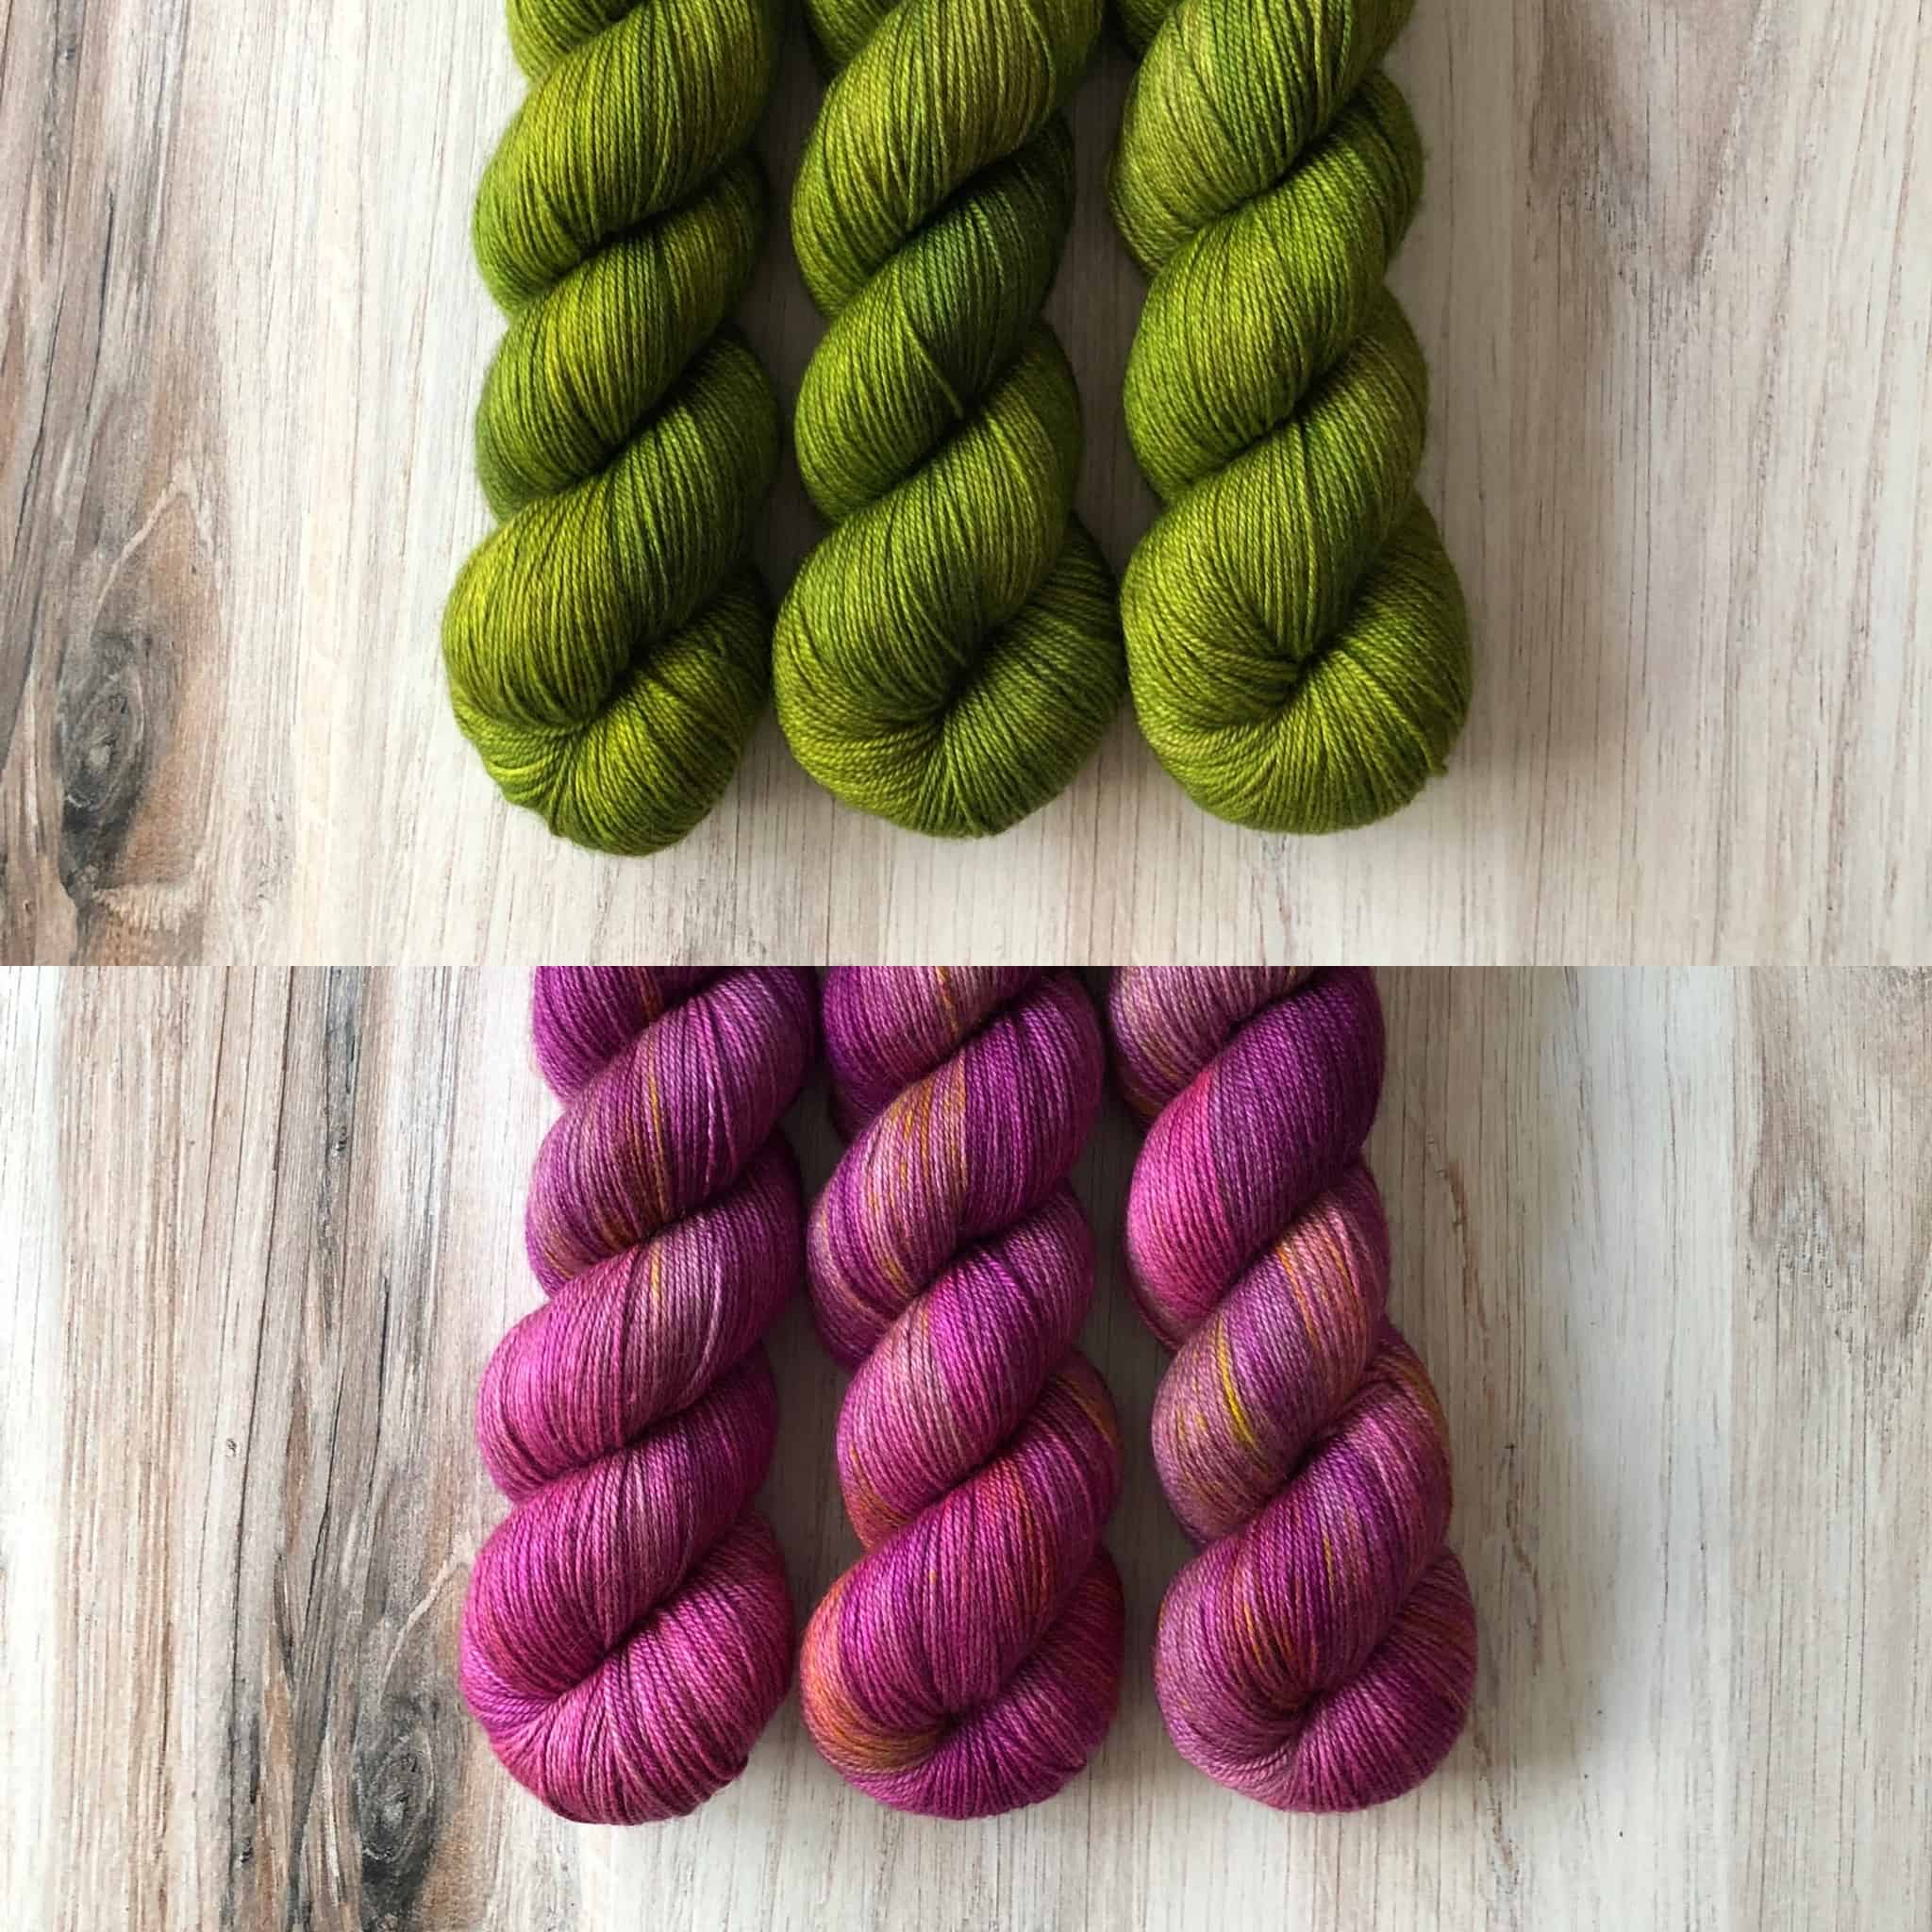 Green and pink yarn.